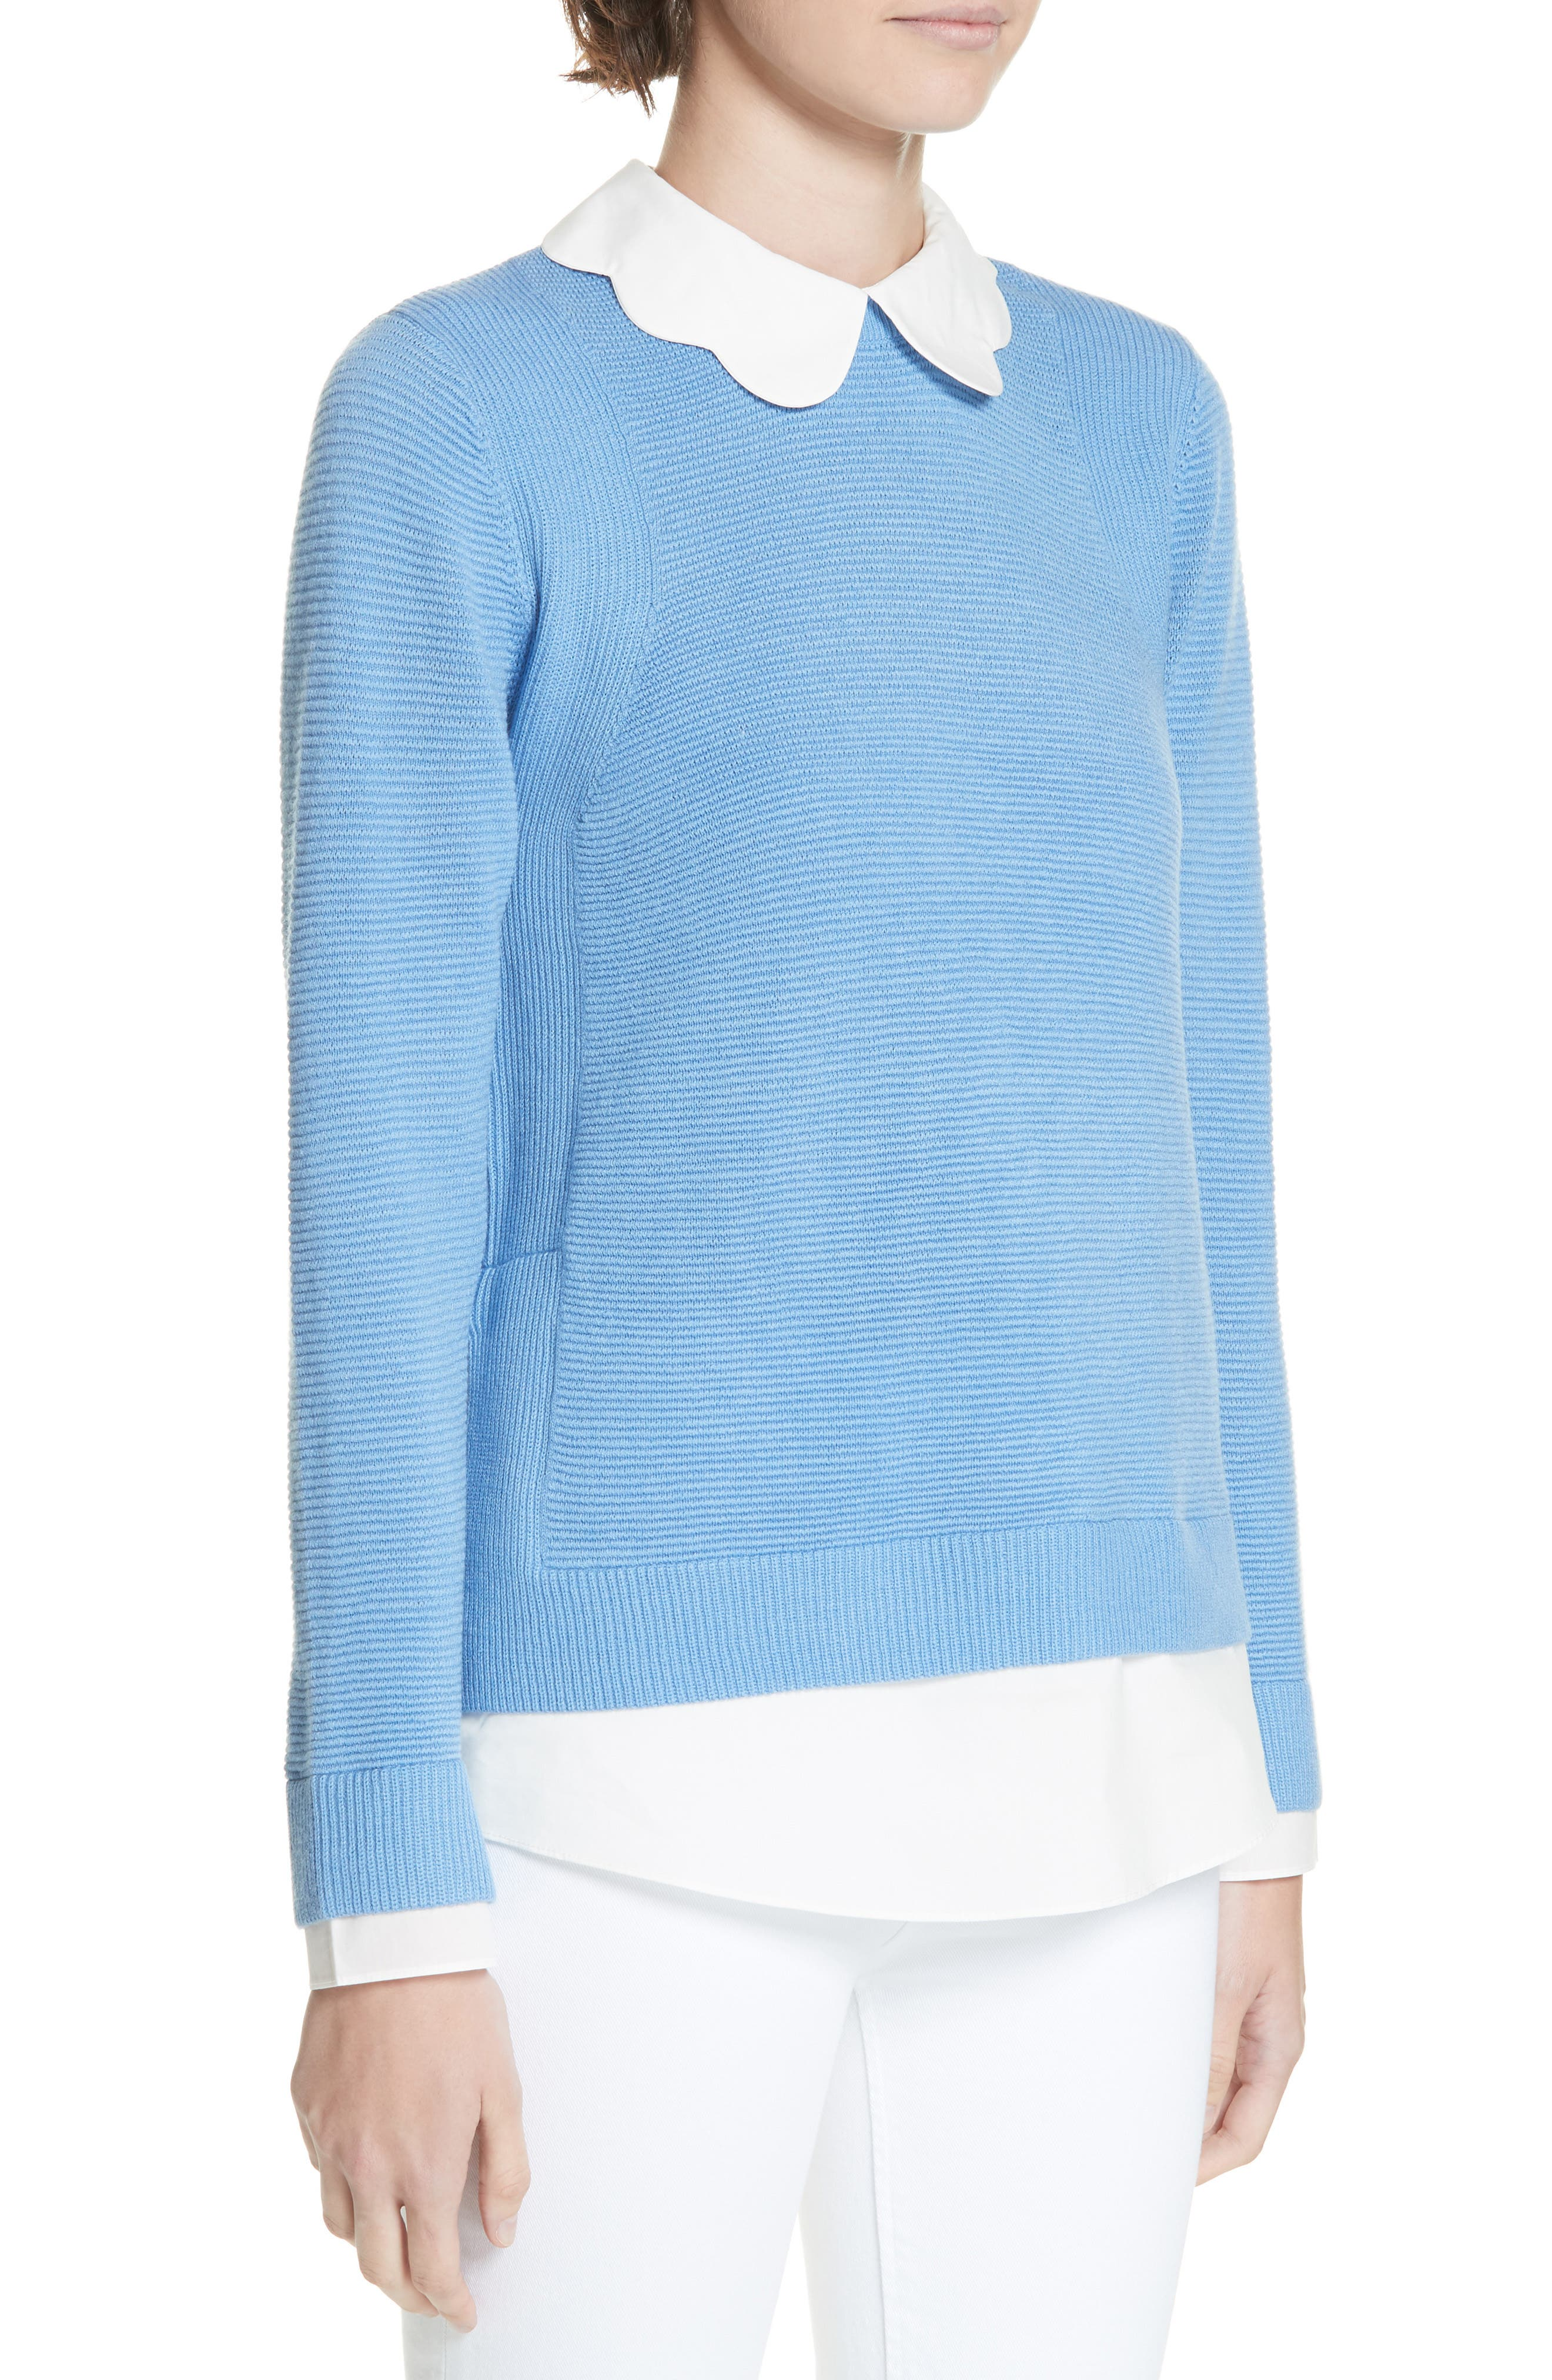 Bronwen Scalloped Collar Sweater,                             Alternate thumbnail 4, color,                             424